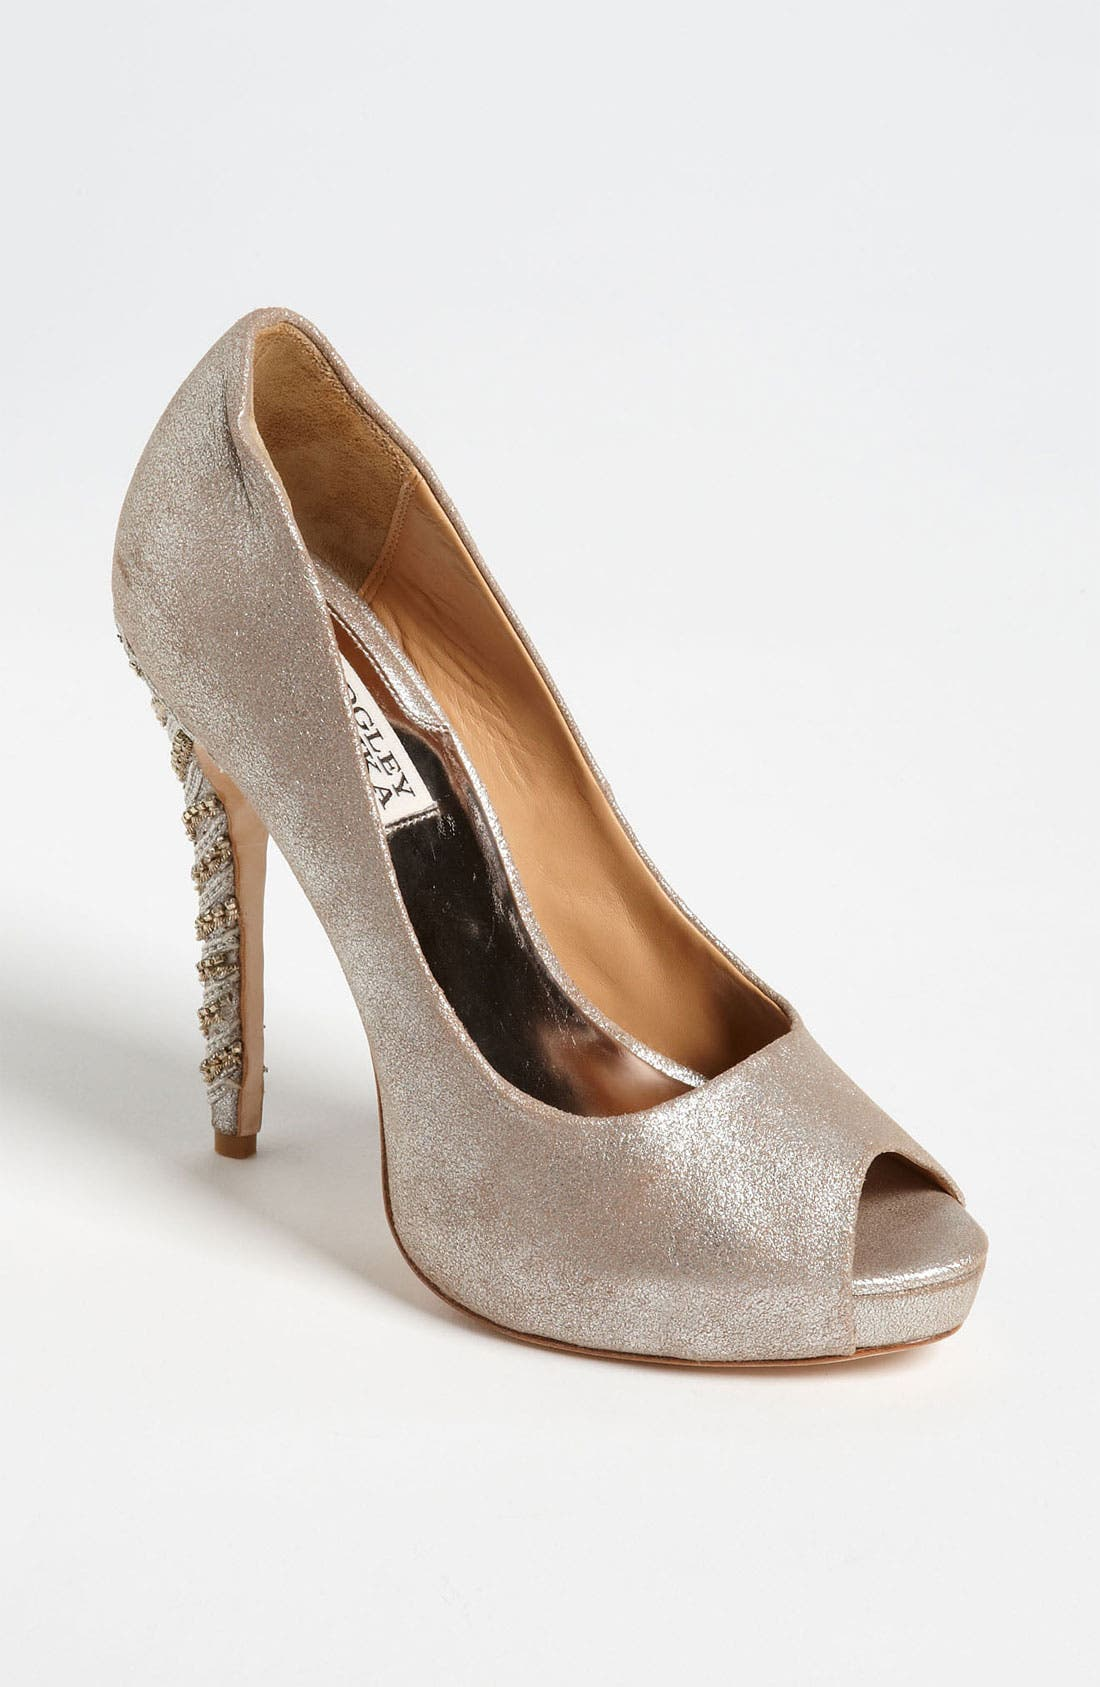 Main Image - Badgley Mischka 'Vixen' Pump